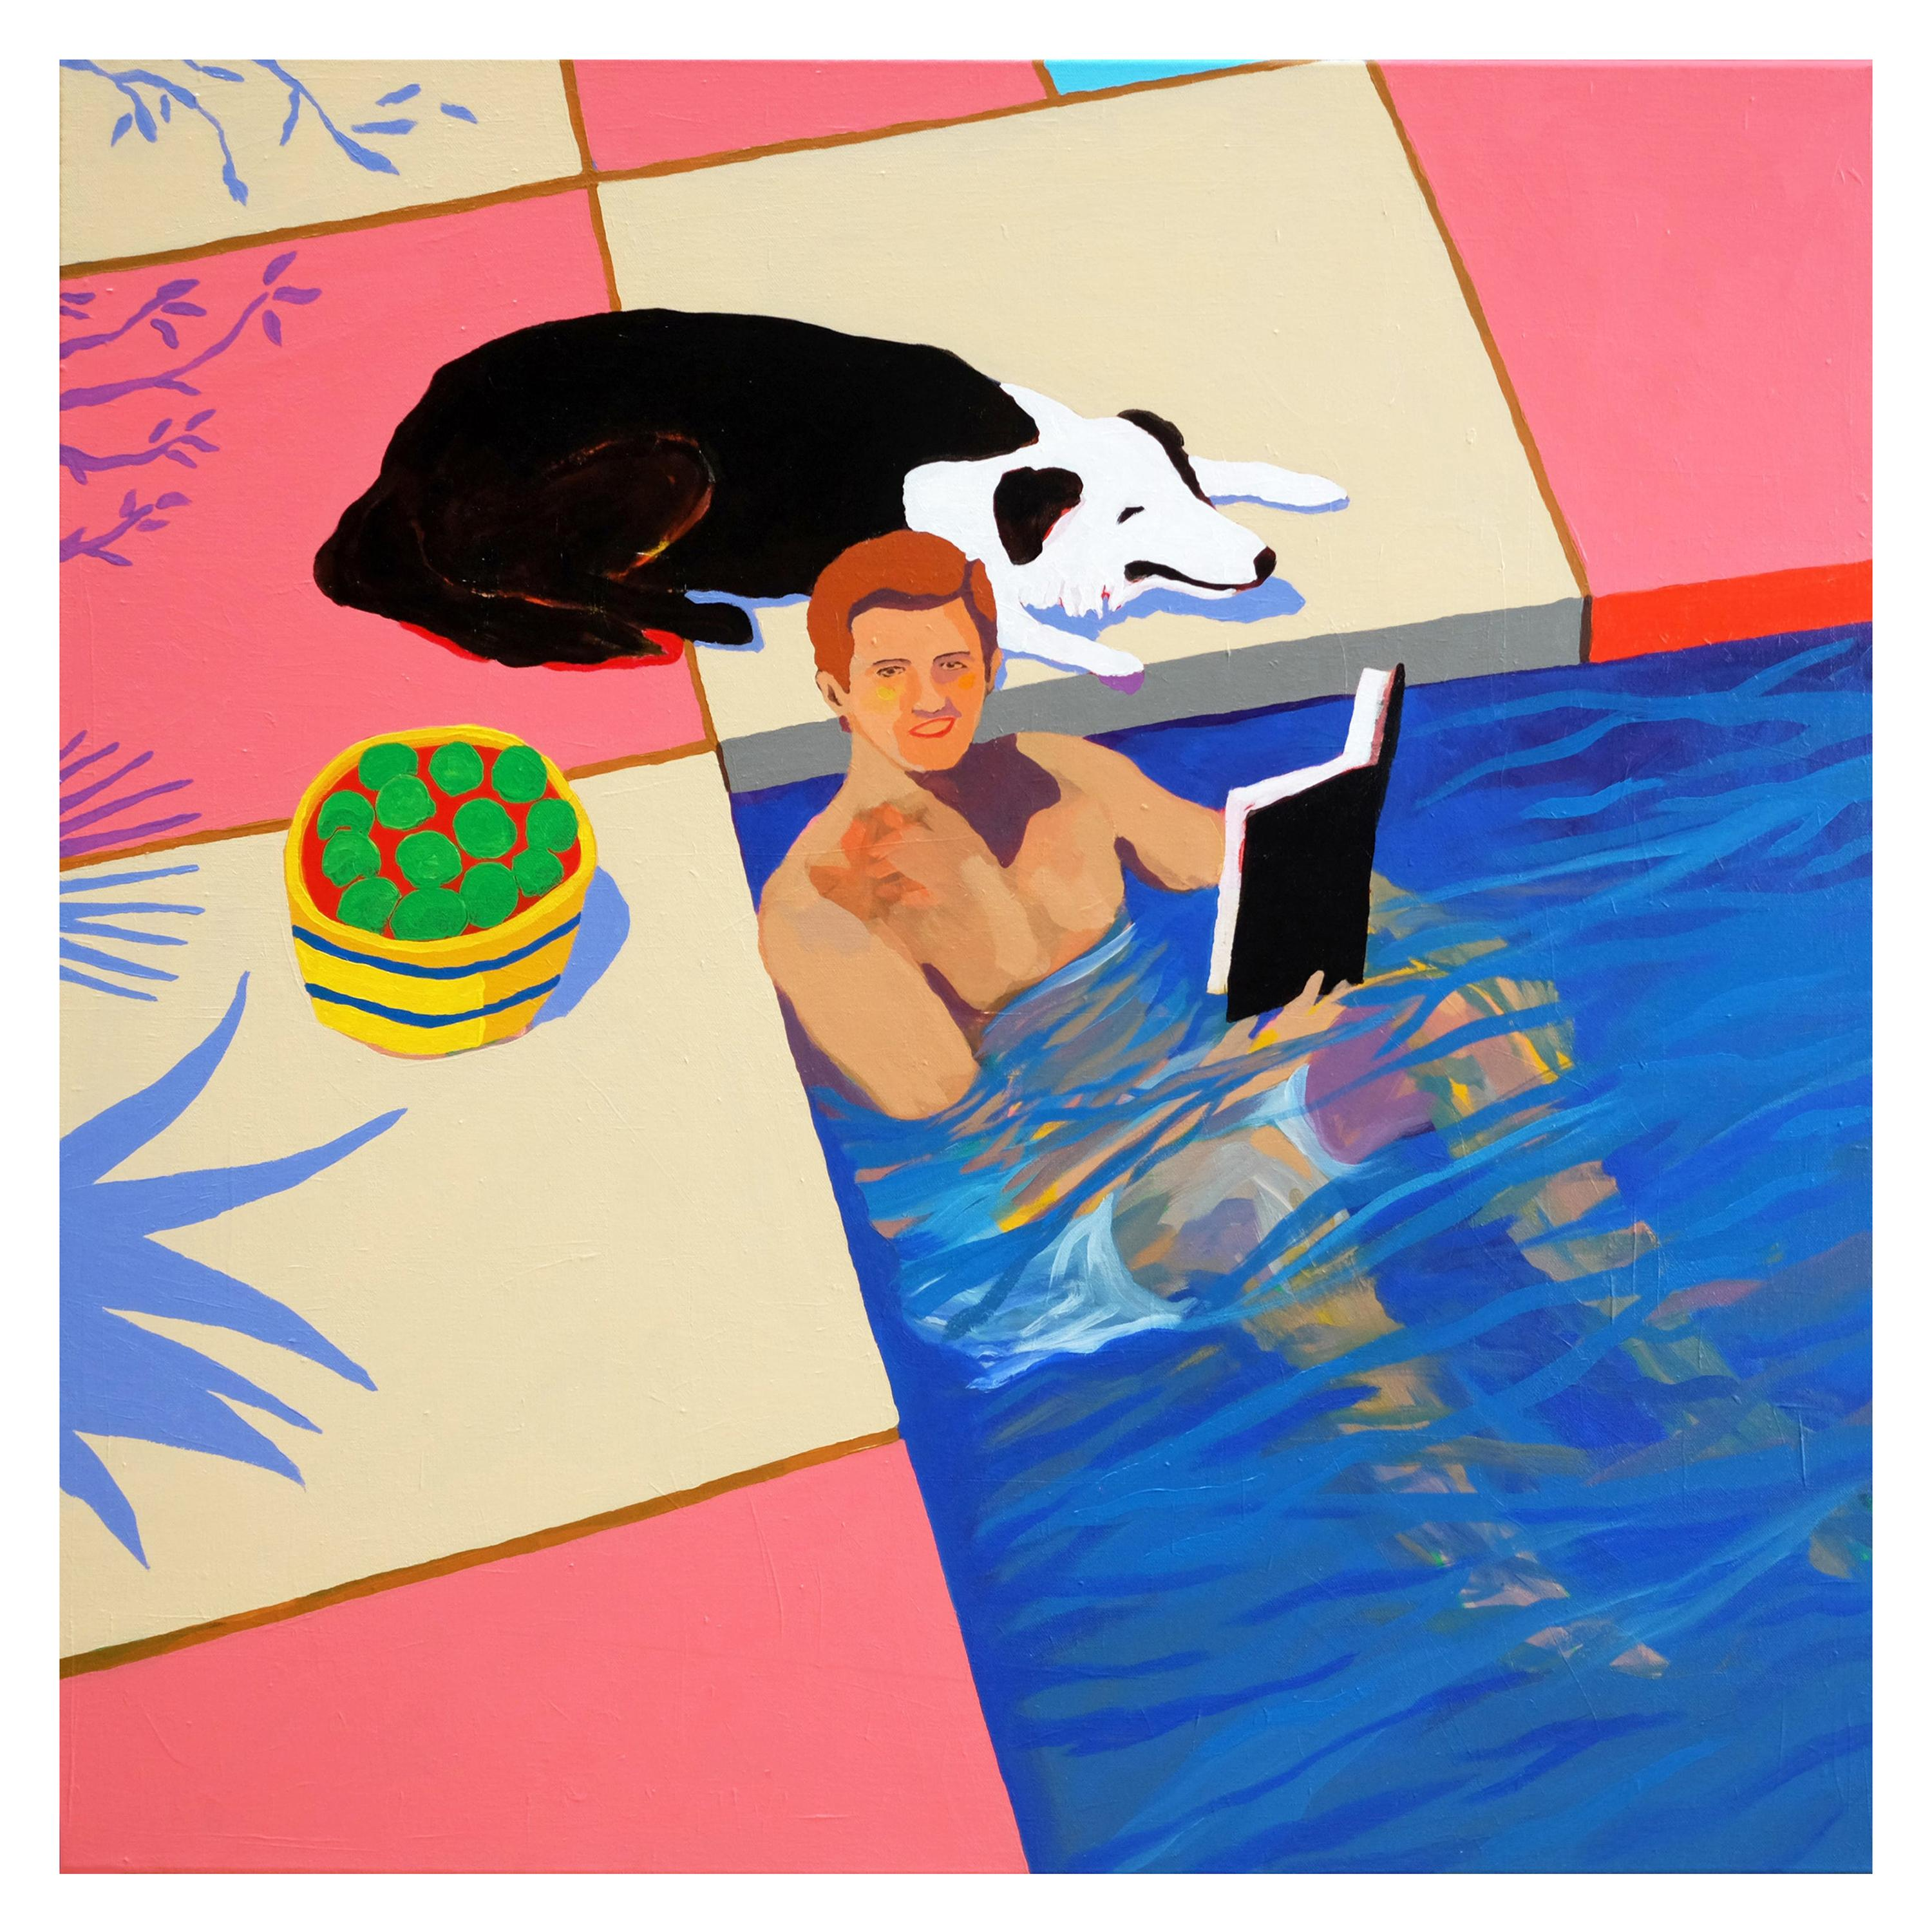 'A New Chapter' Portrait Painting by Alan Fears Pop Art